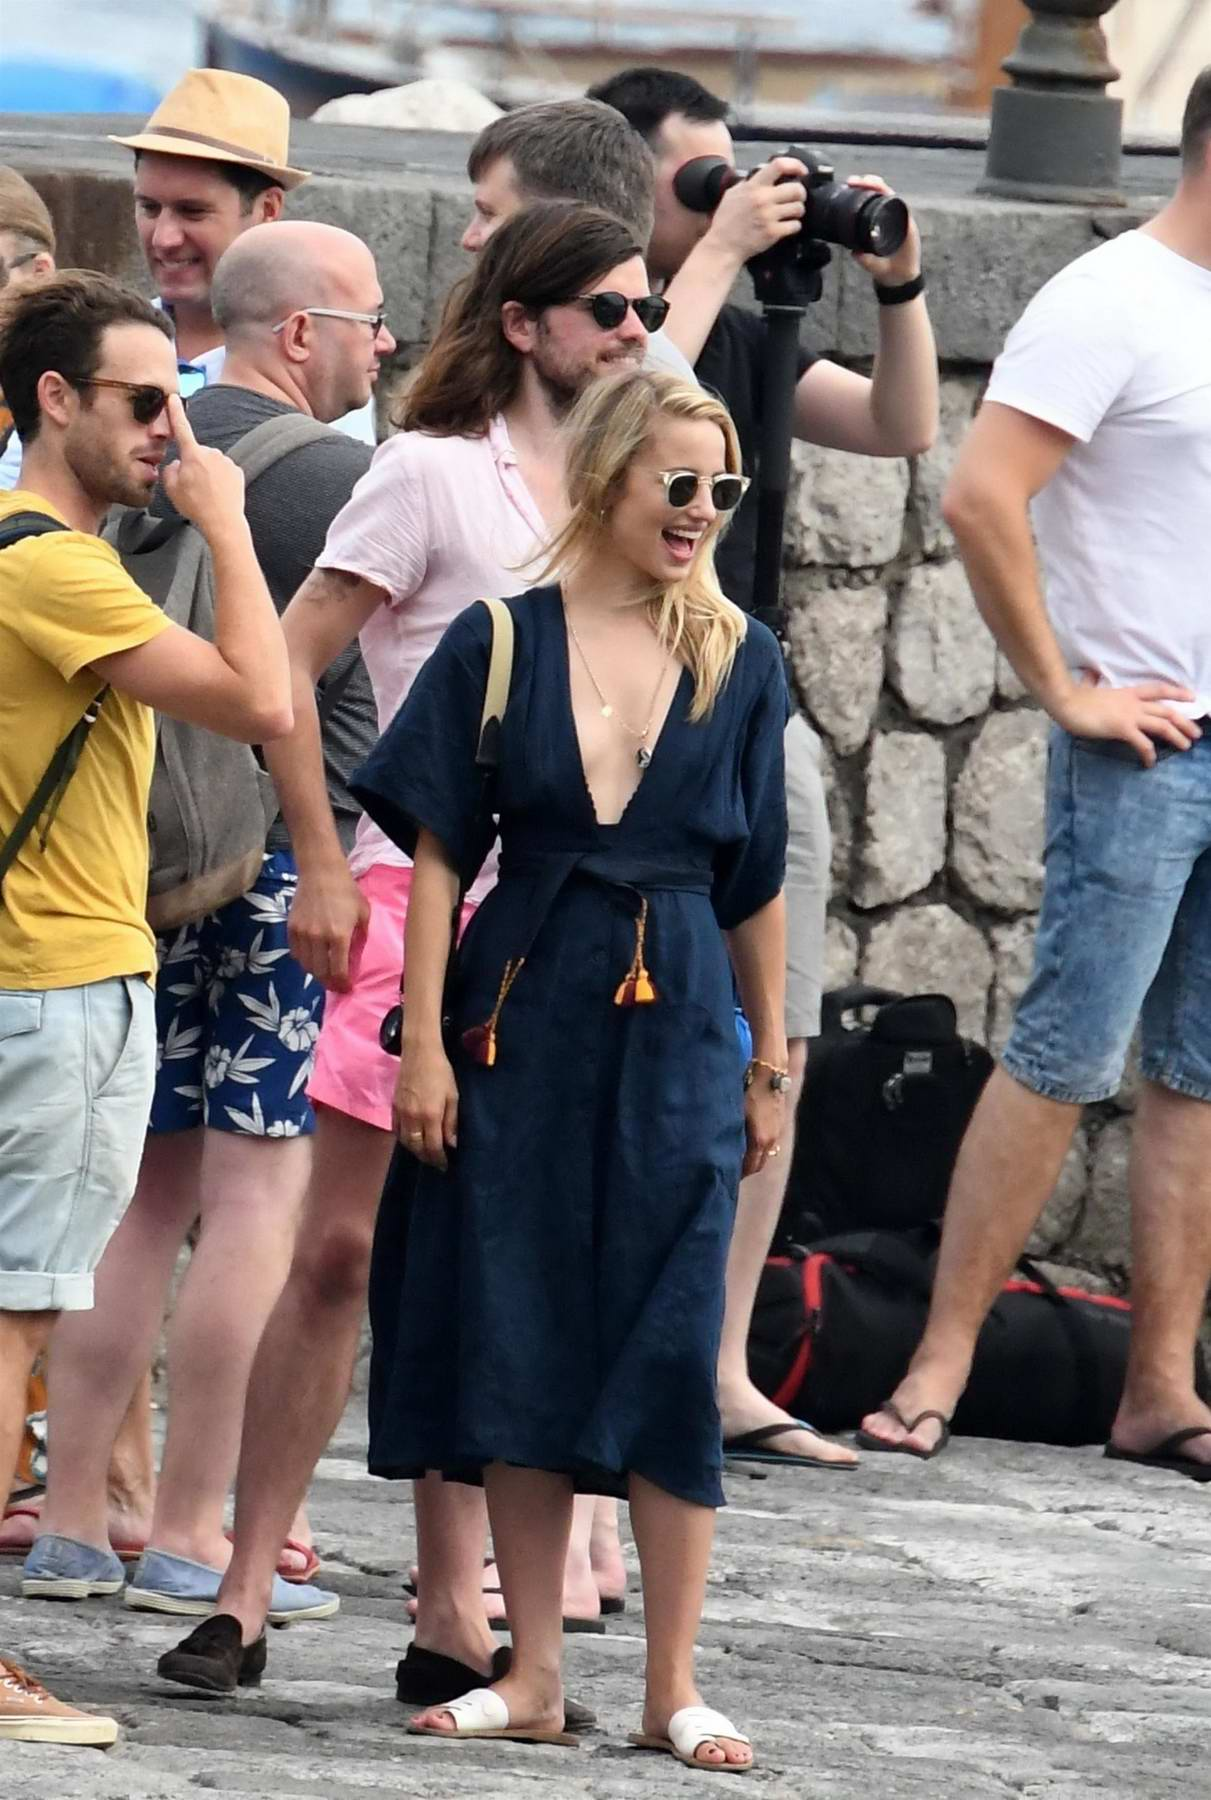 Dianna Agron and husband Winston Marshall arrived to attend Lizzy Caplan and Tom Riley pre-wedding party in Amalfi Coast, Italy